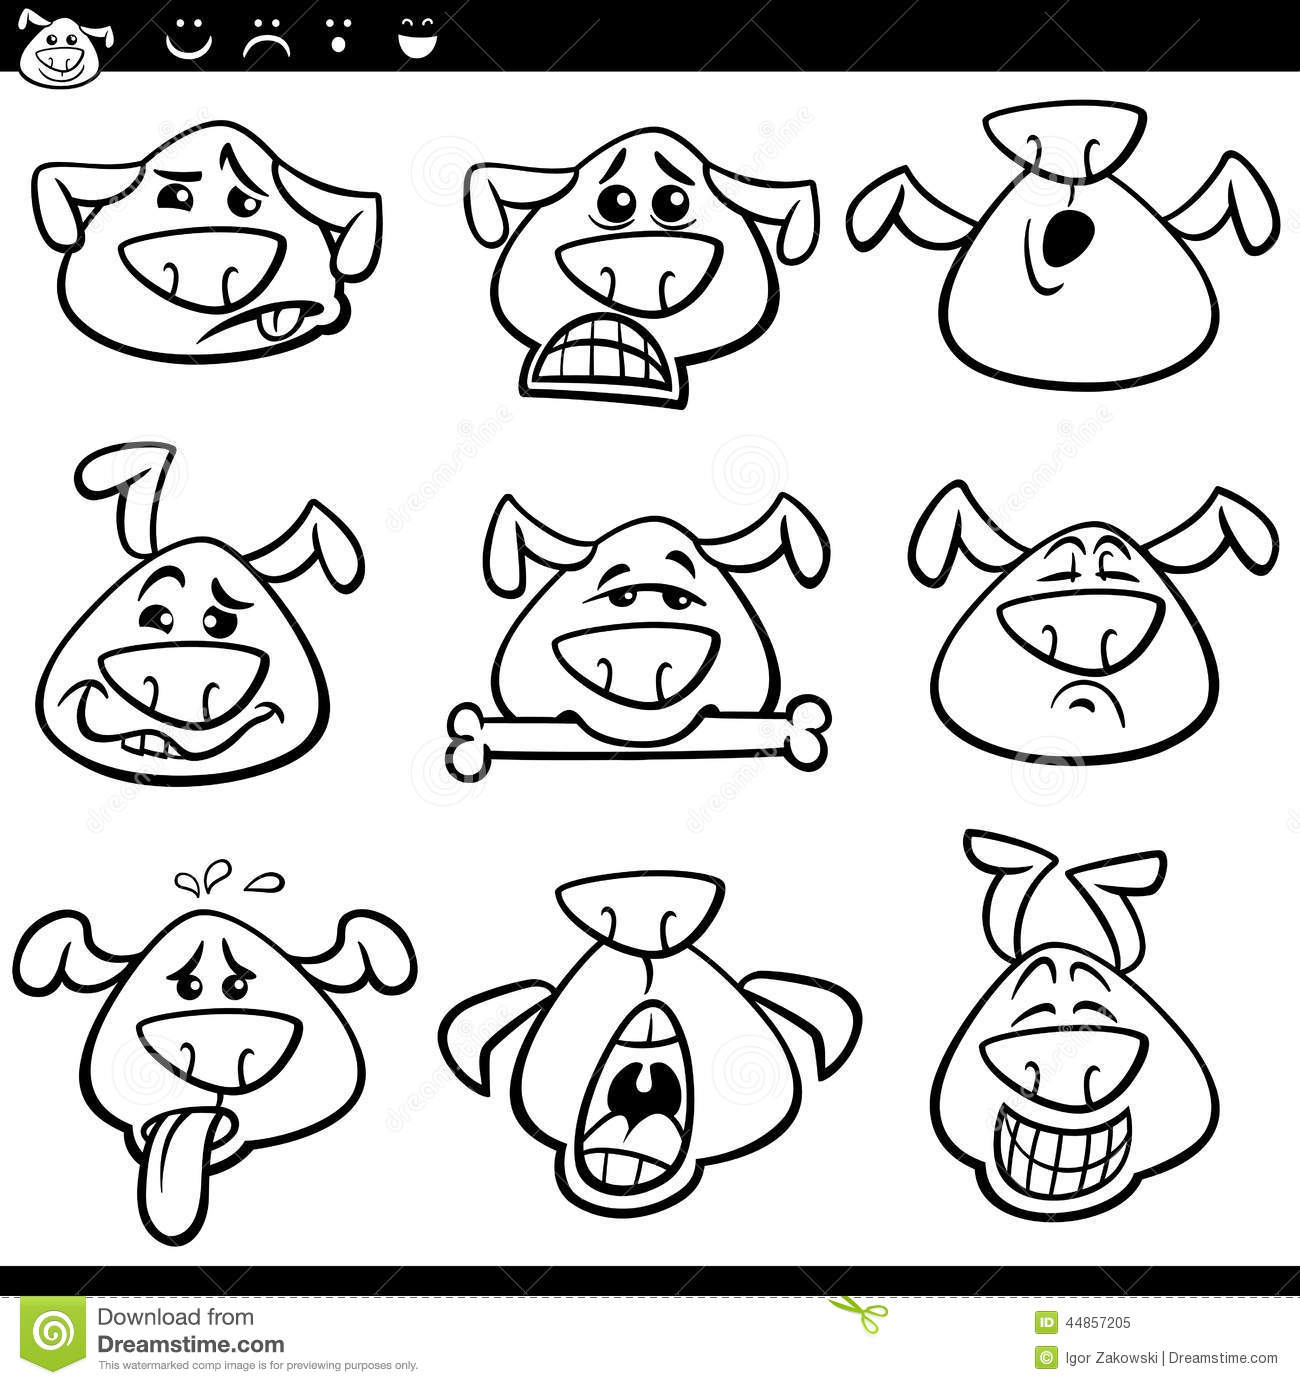 Dog Emoticons Cartoon Coloring Page Stock Vector Illustration Of